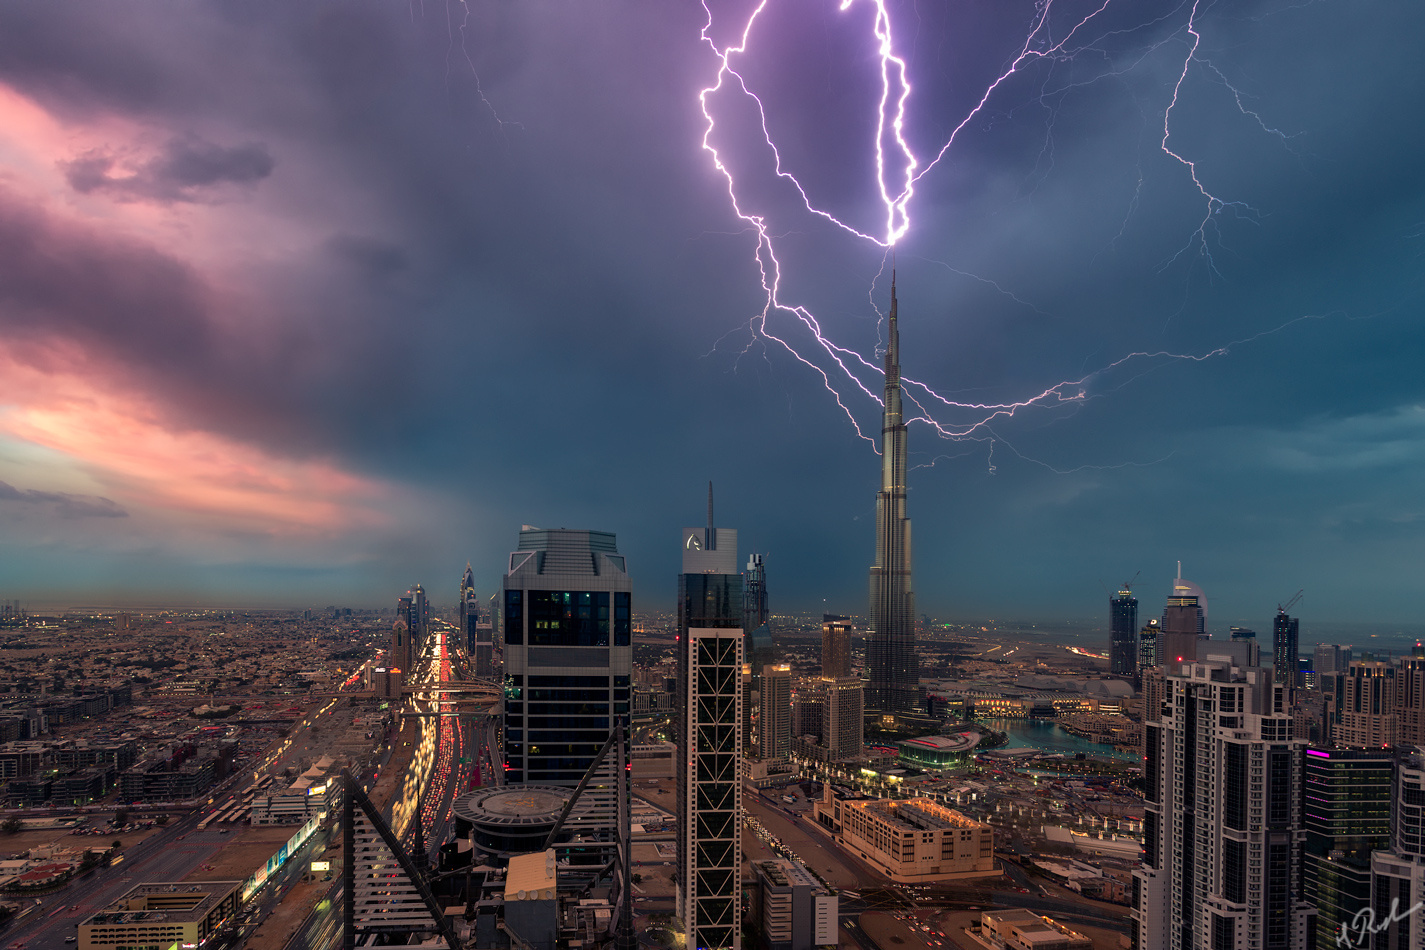 How I Shot this Crazy Photo of Lightning Striking the Burj Khalifa